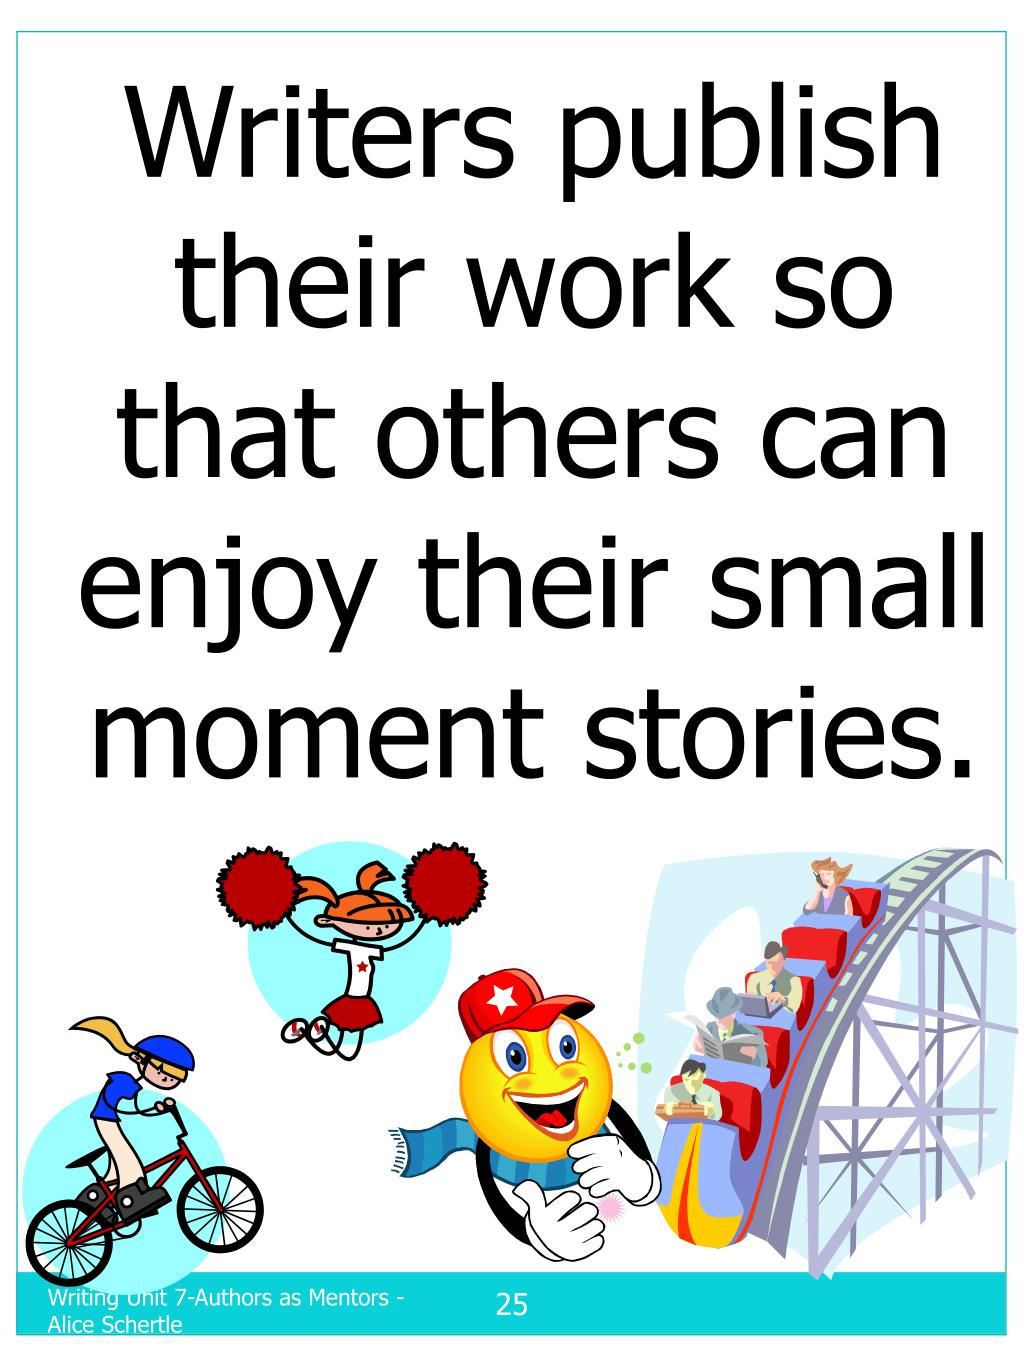 Writers publish their work so that others can enjoy their small moment stories.